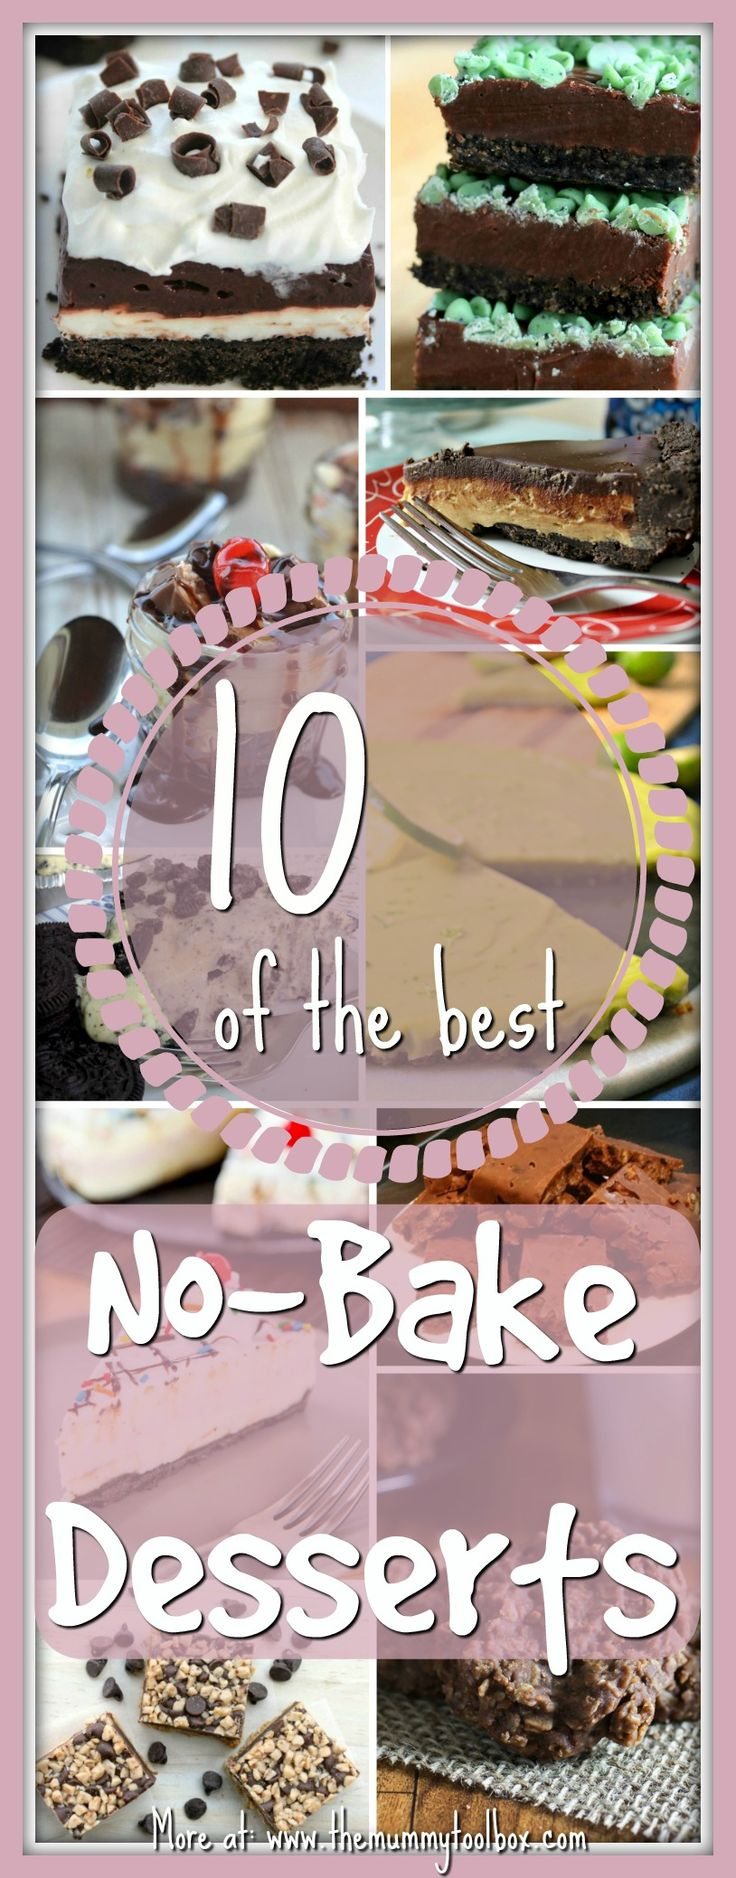 The best kind of dessert is the one you don't have to cook am i right? here are 10 delectable and easy no-bake desserts and recipes in all of their glory.